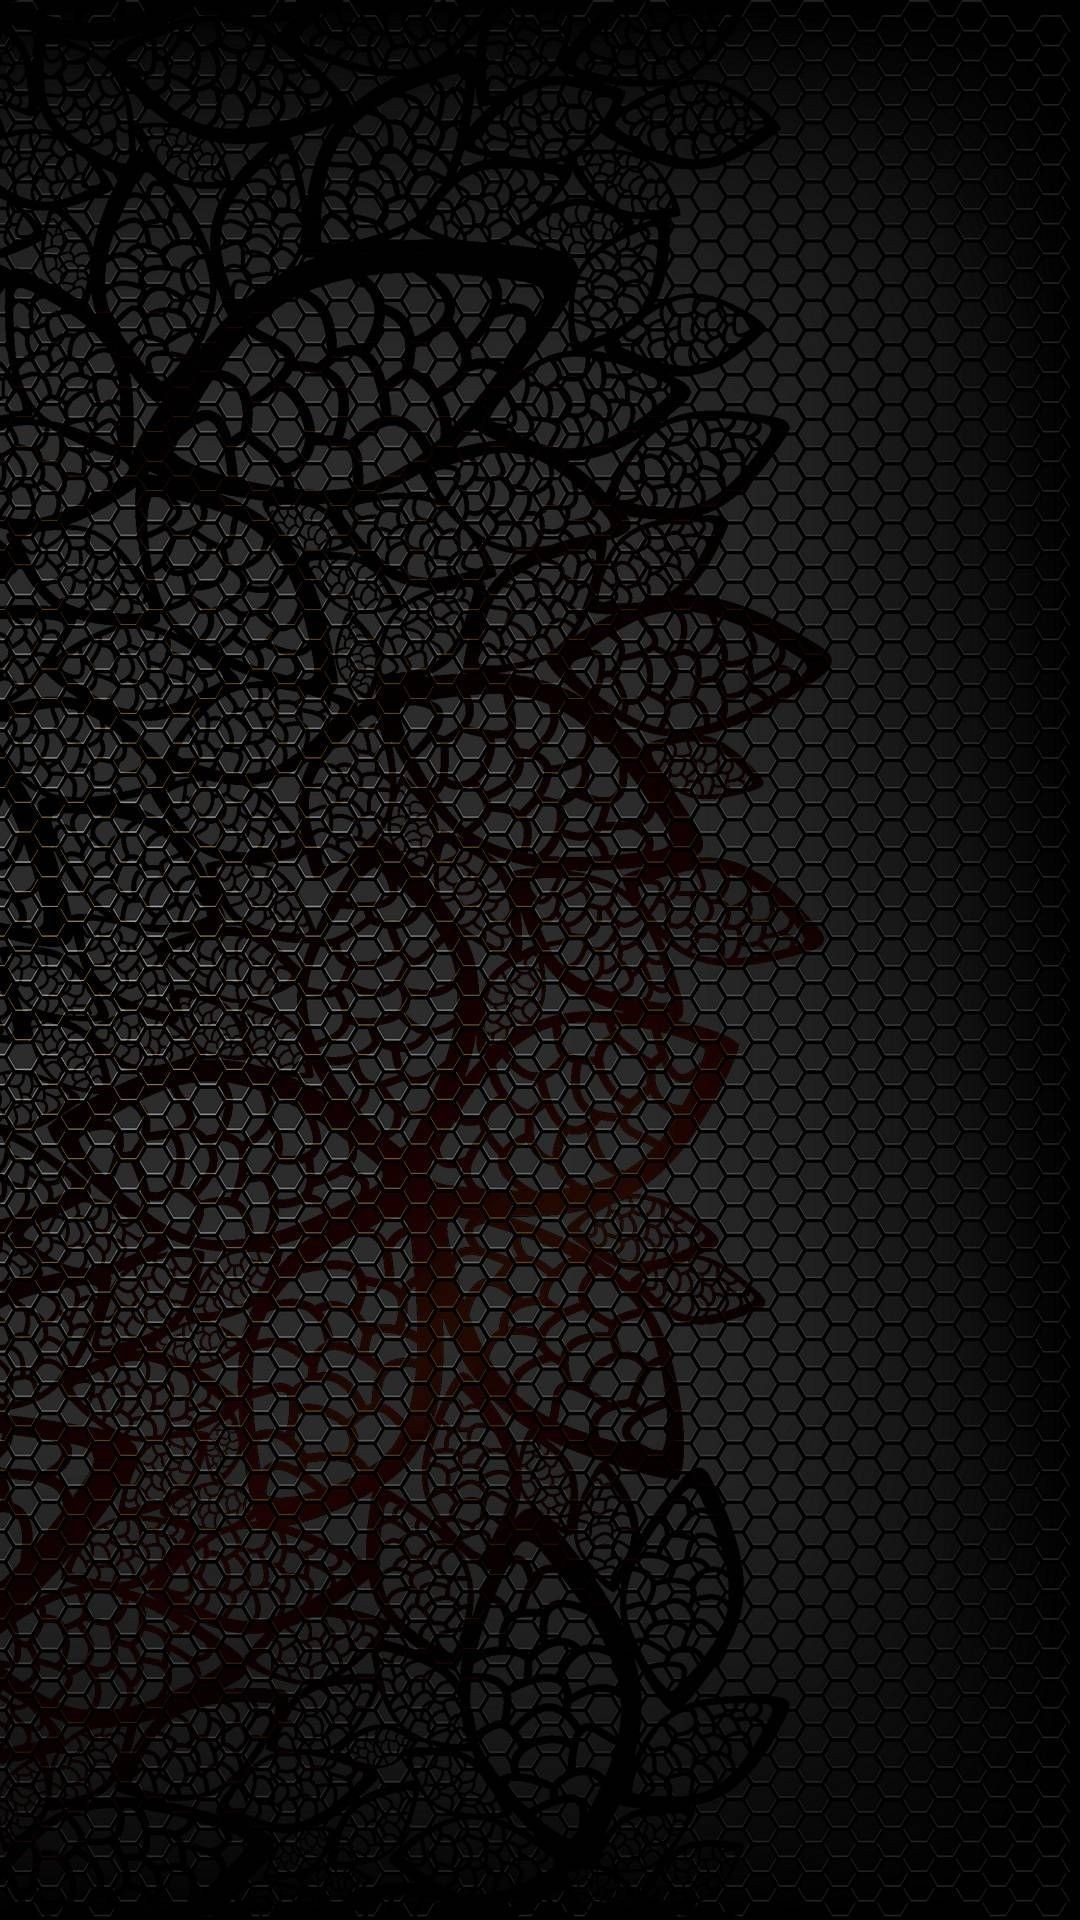 Black iphone 5 wallpaper